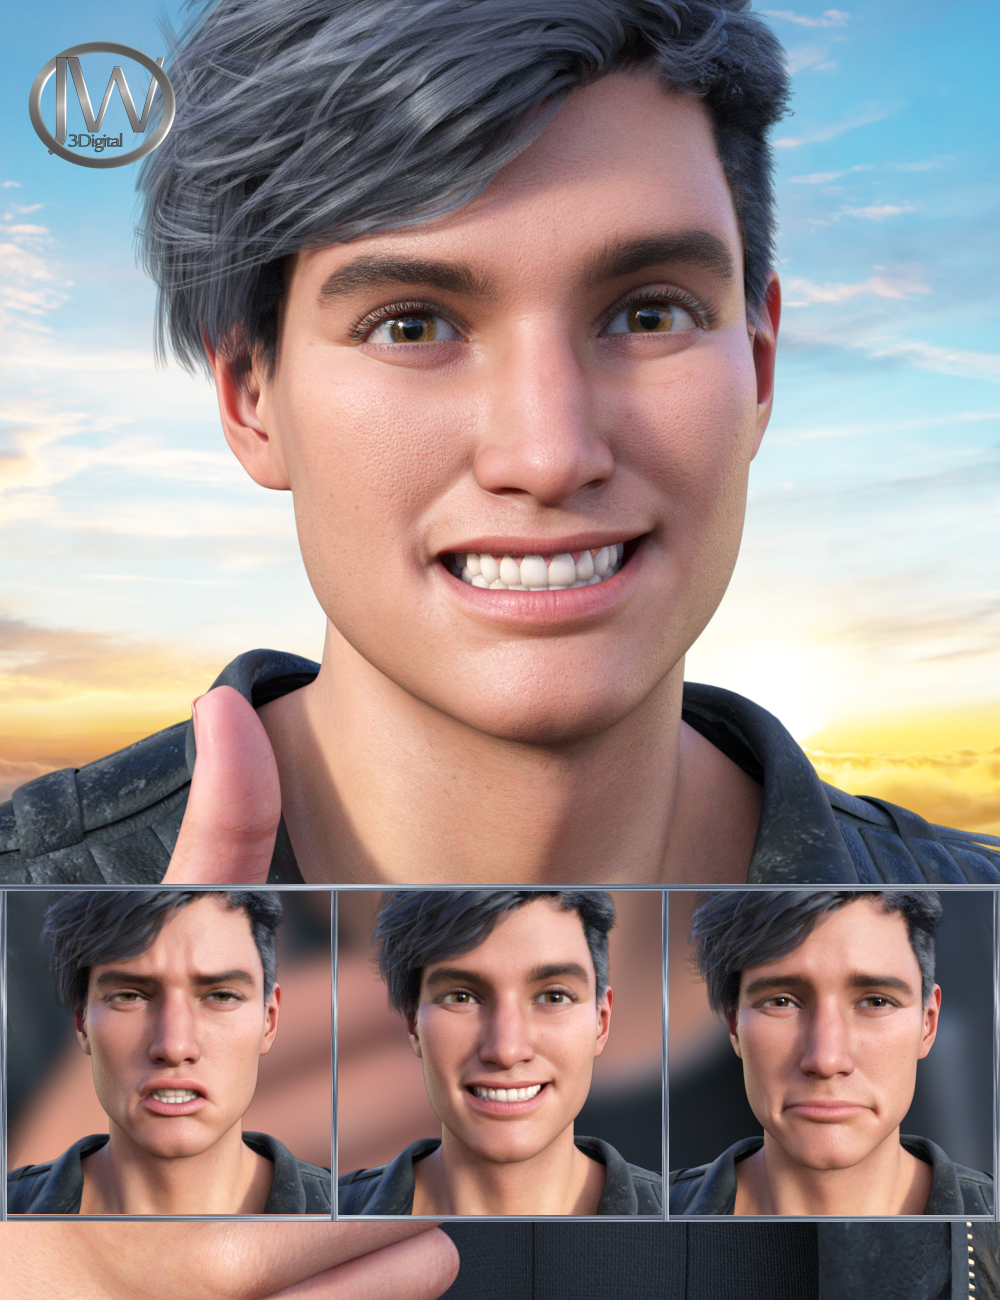 New Faces Expressions for Genesis 8.1 Male and Michael 8.1 by: JWolf, 3D Models by Daz 3D